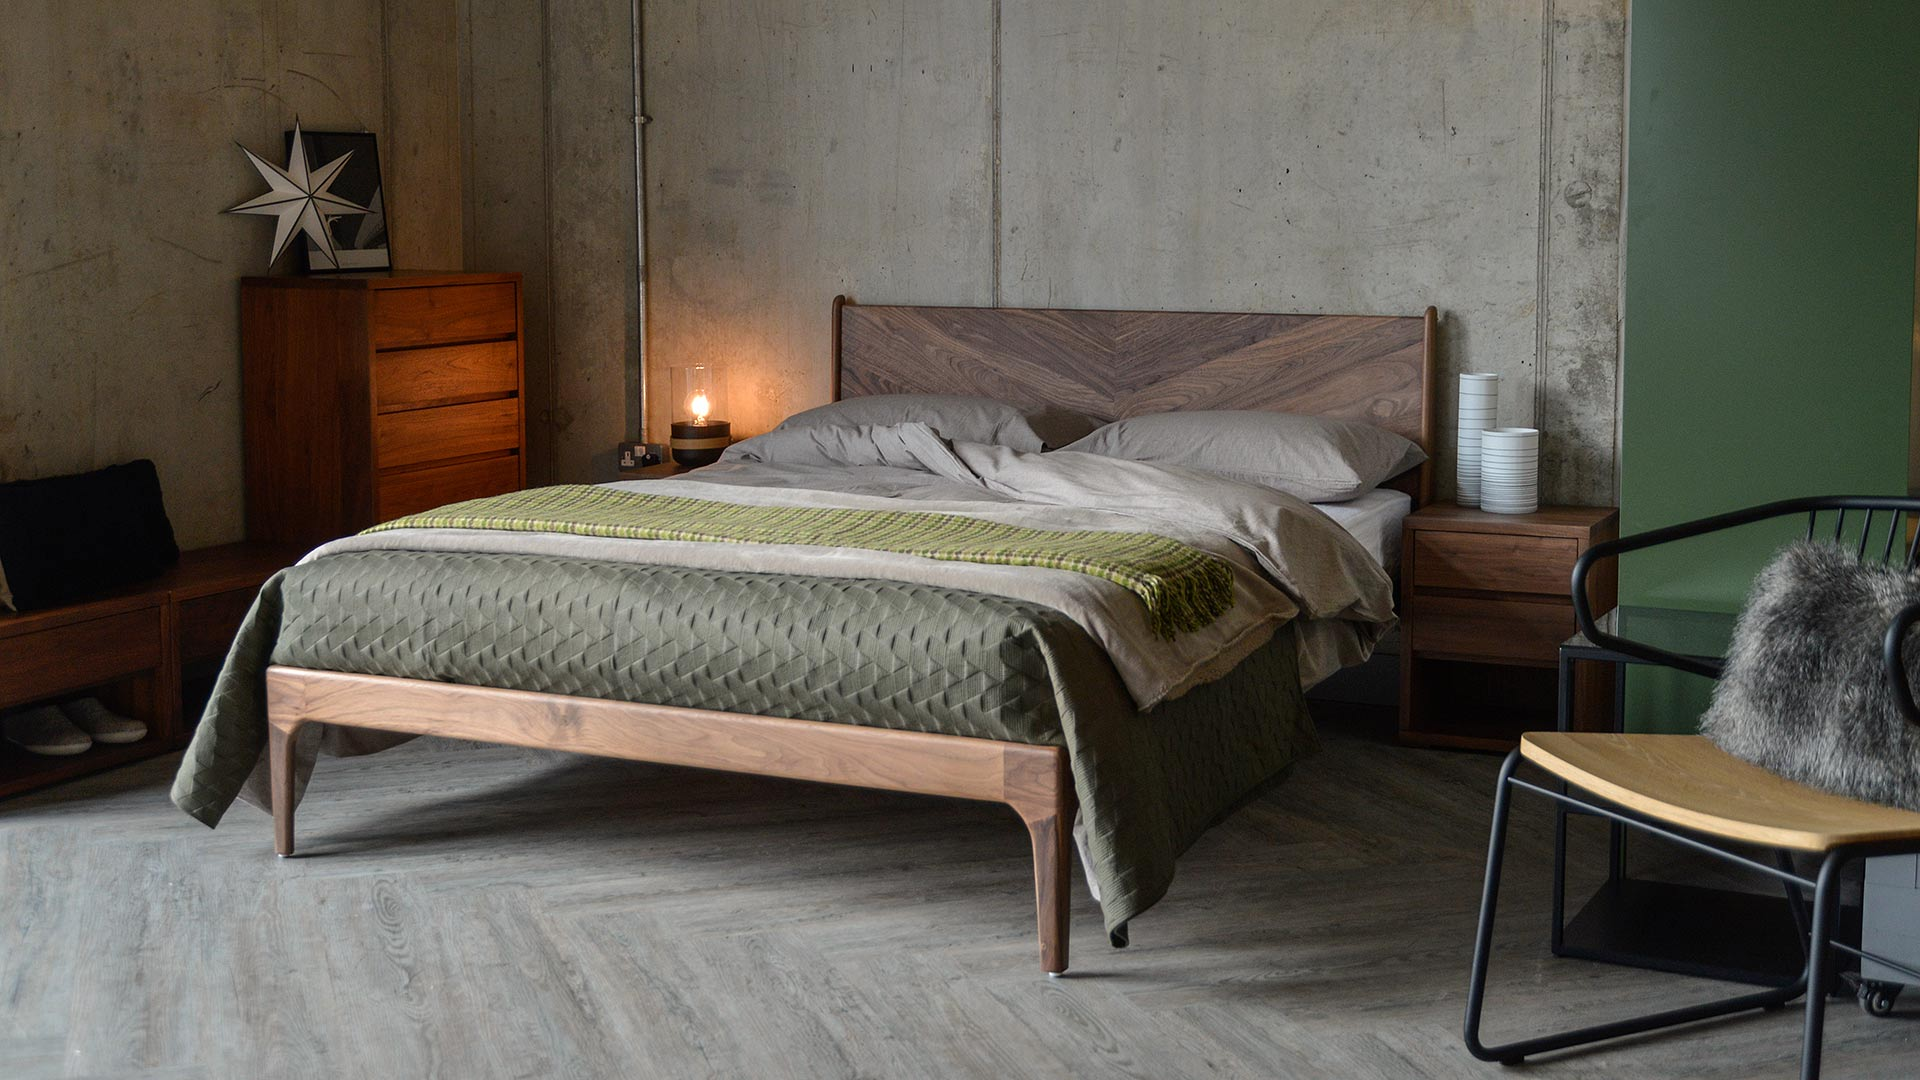 Hoxton contemporary wooden bed with striking chevron headboard and made in Walnut.